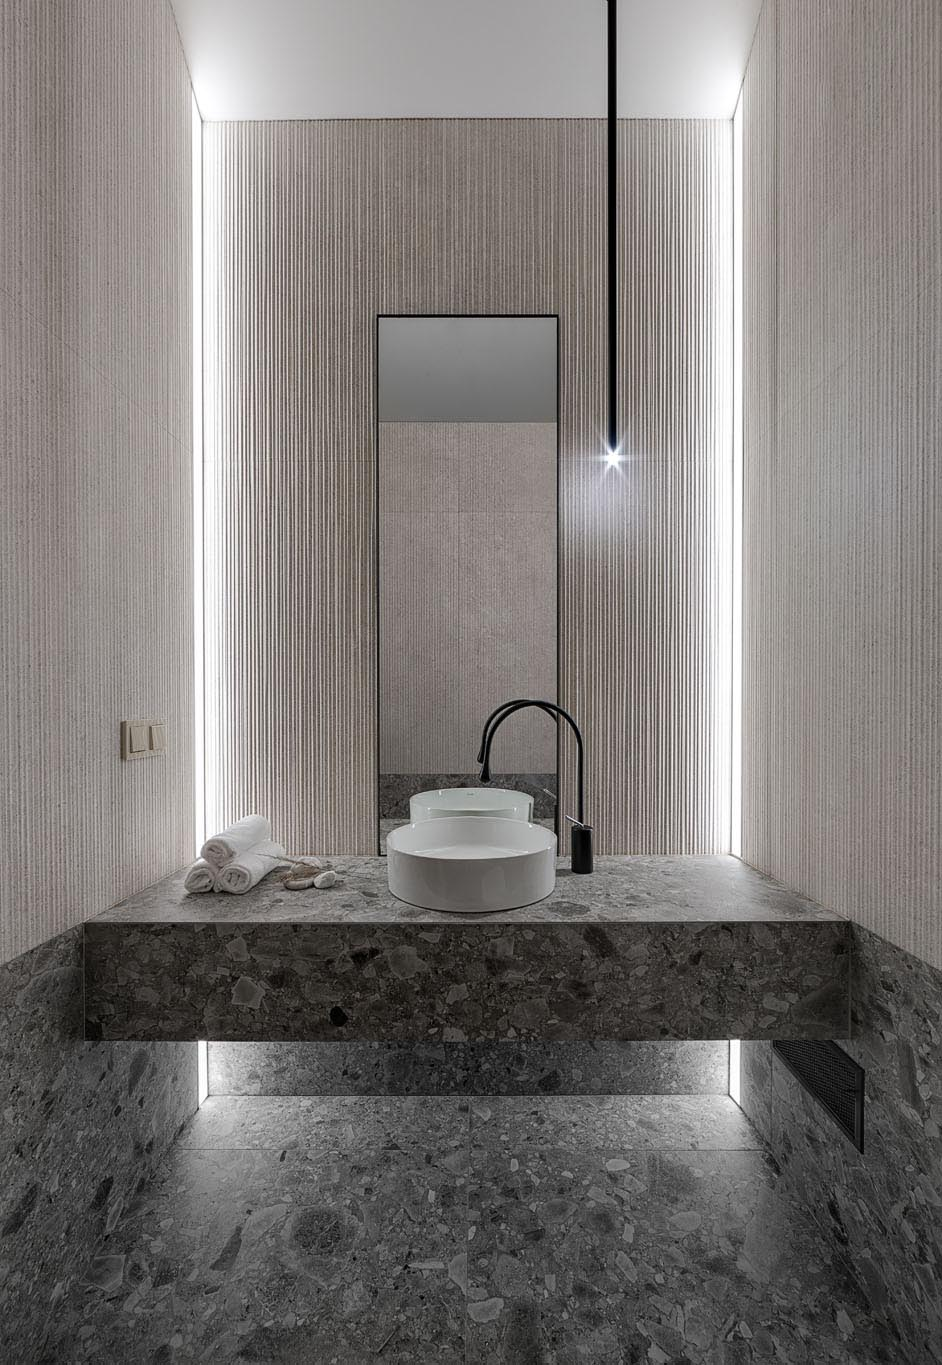 In this modern bathroom, there's simple textured walls, a minimalist light fixture, and a stone vanity and matching flooring.